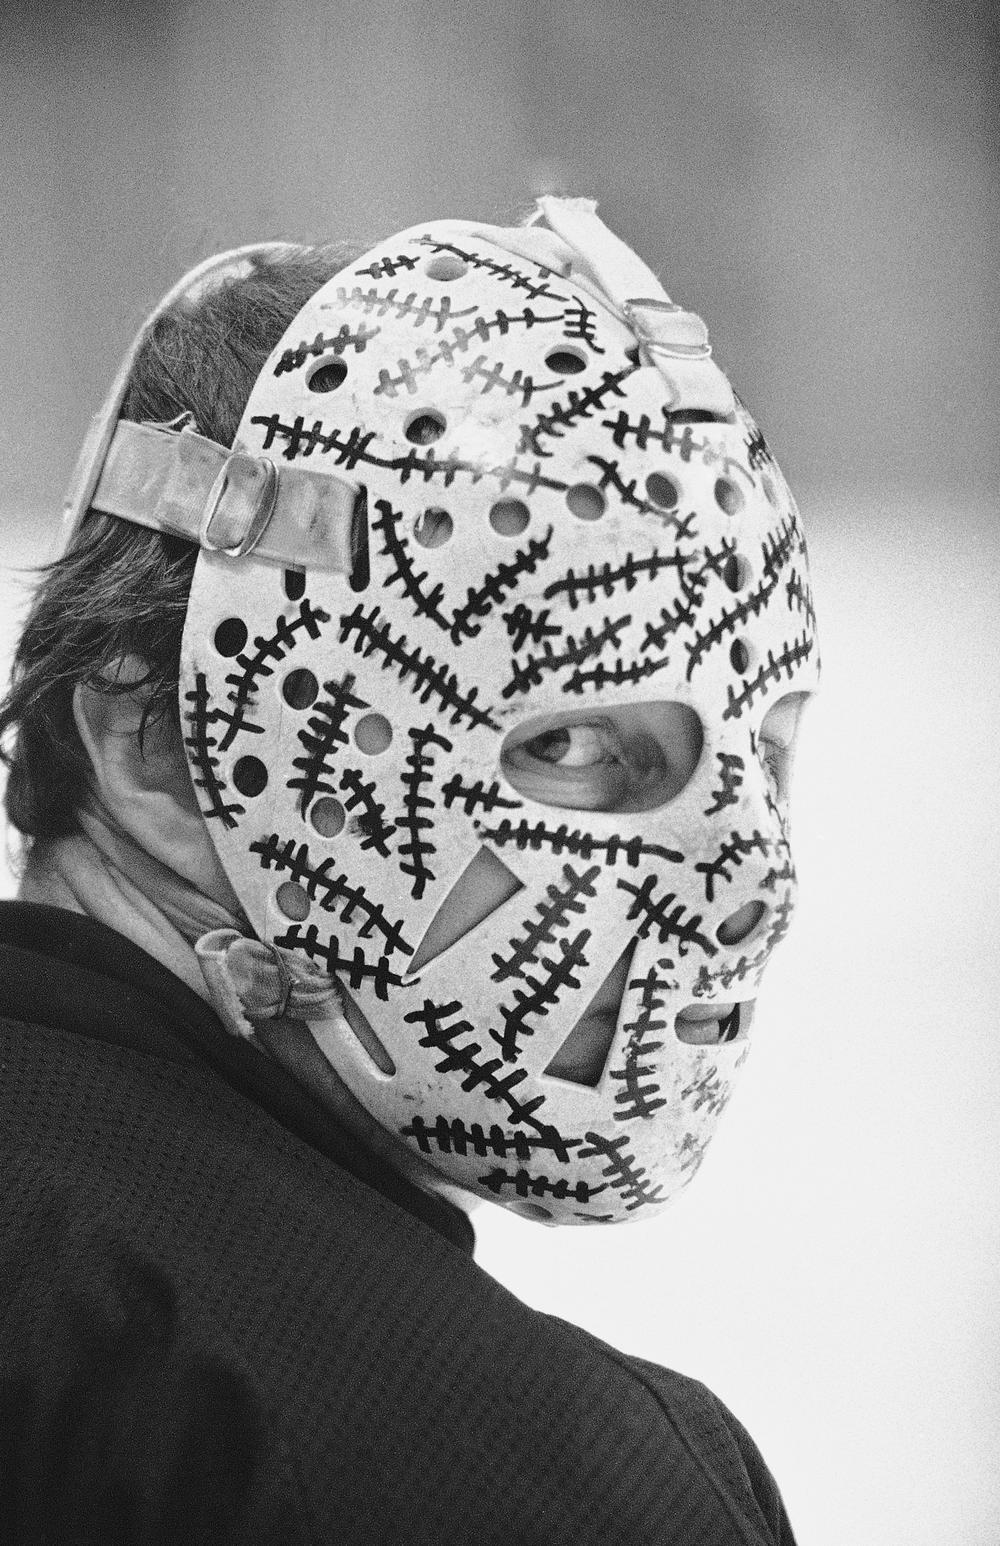 Gerry Cheevers, goalie for the Boston Bruins, in the face mask he decorated to represent the stitches he would have on his face had he been mask-less. May 1978. (AP)